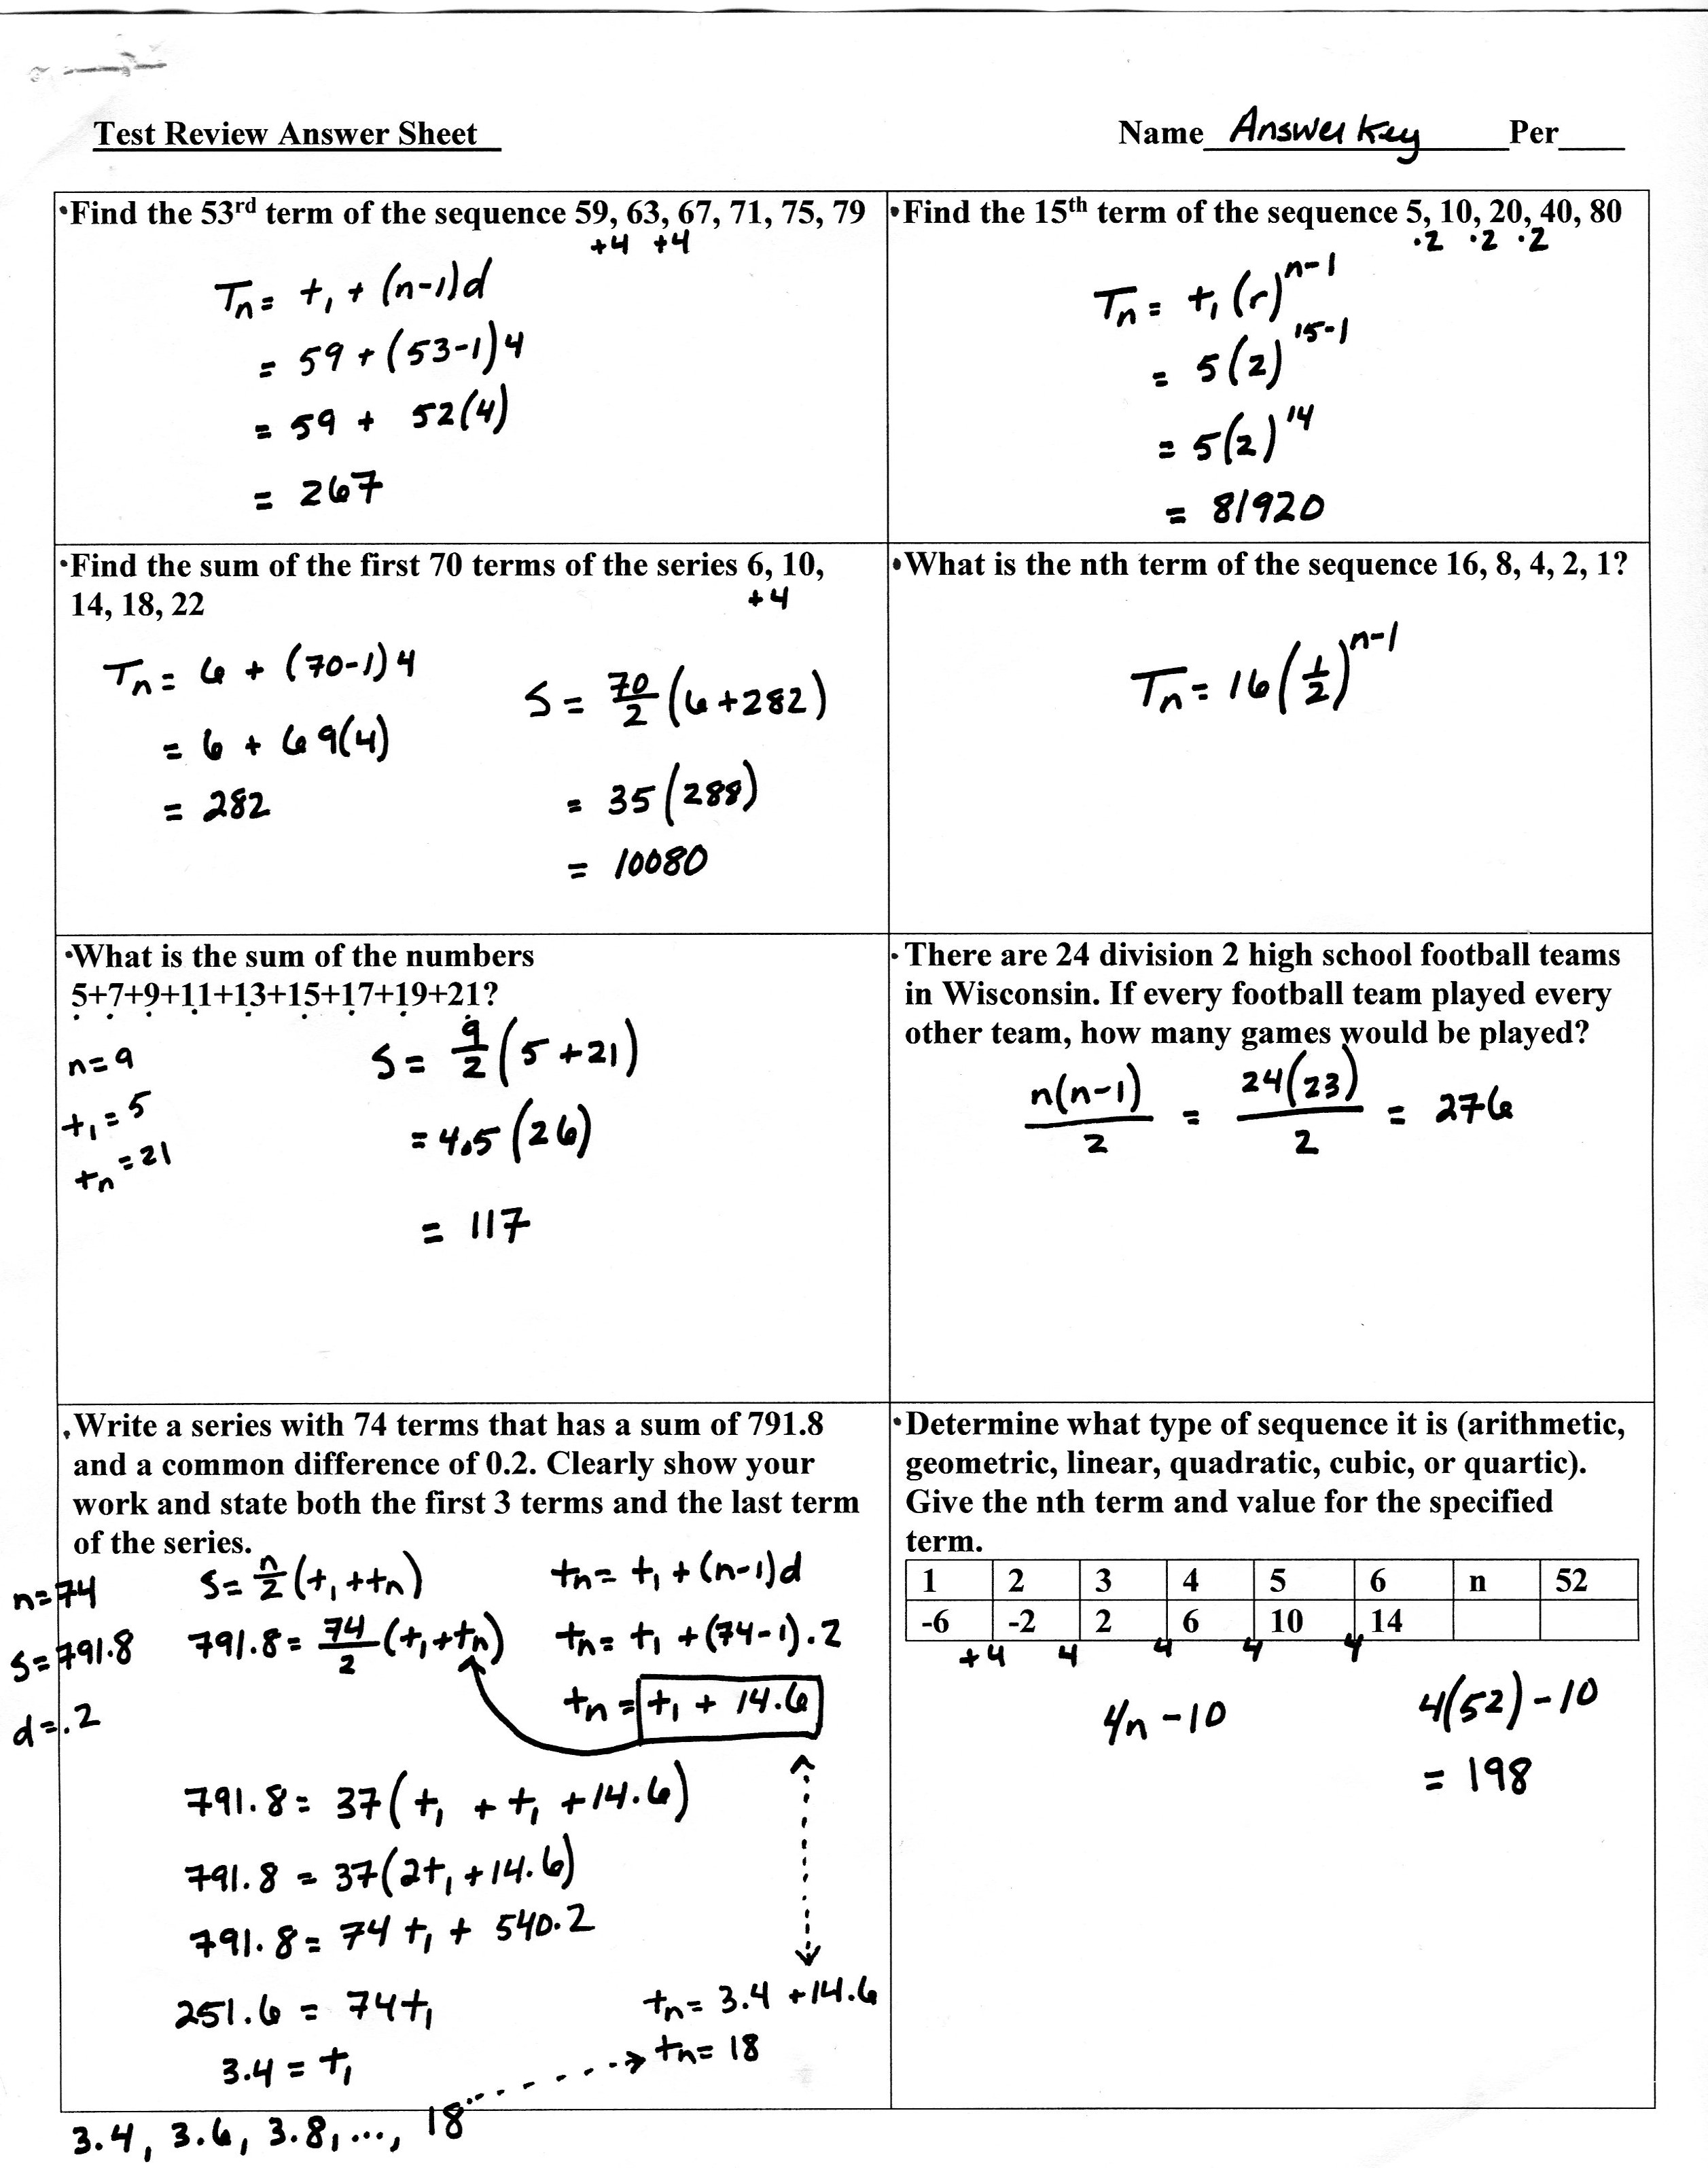 Arithmetic Sequence Worksheet Algebra 1 Business Form